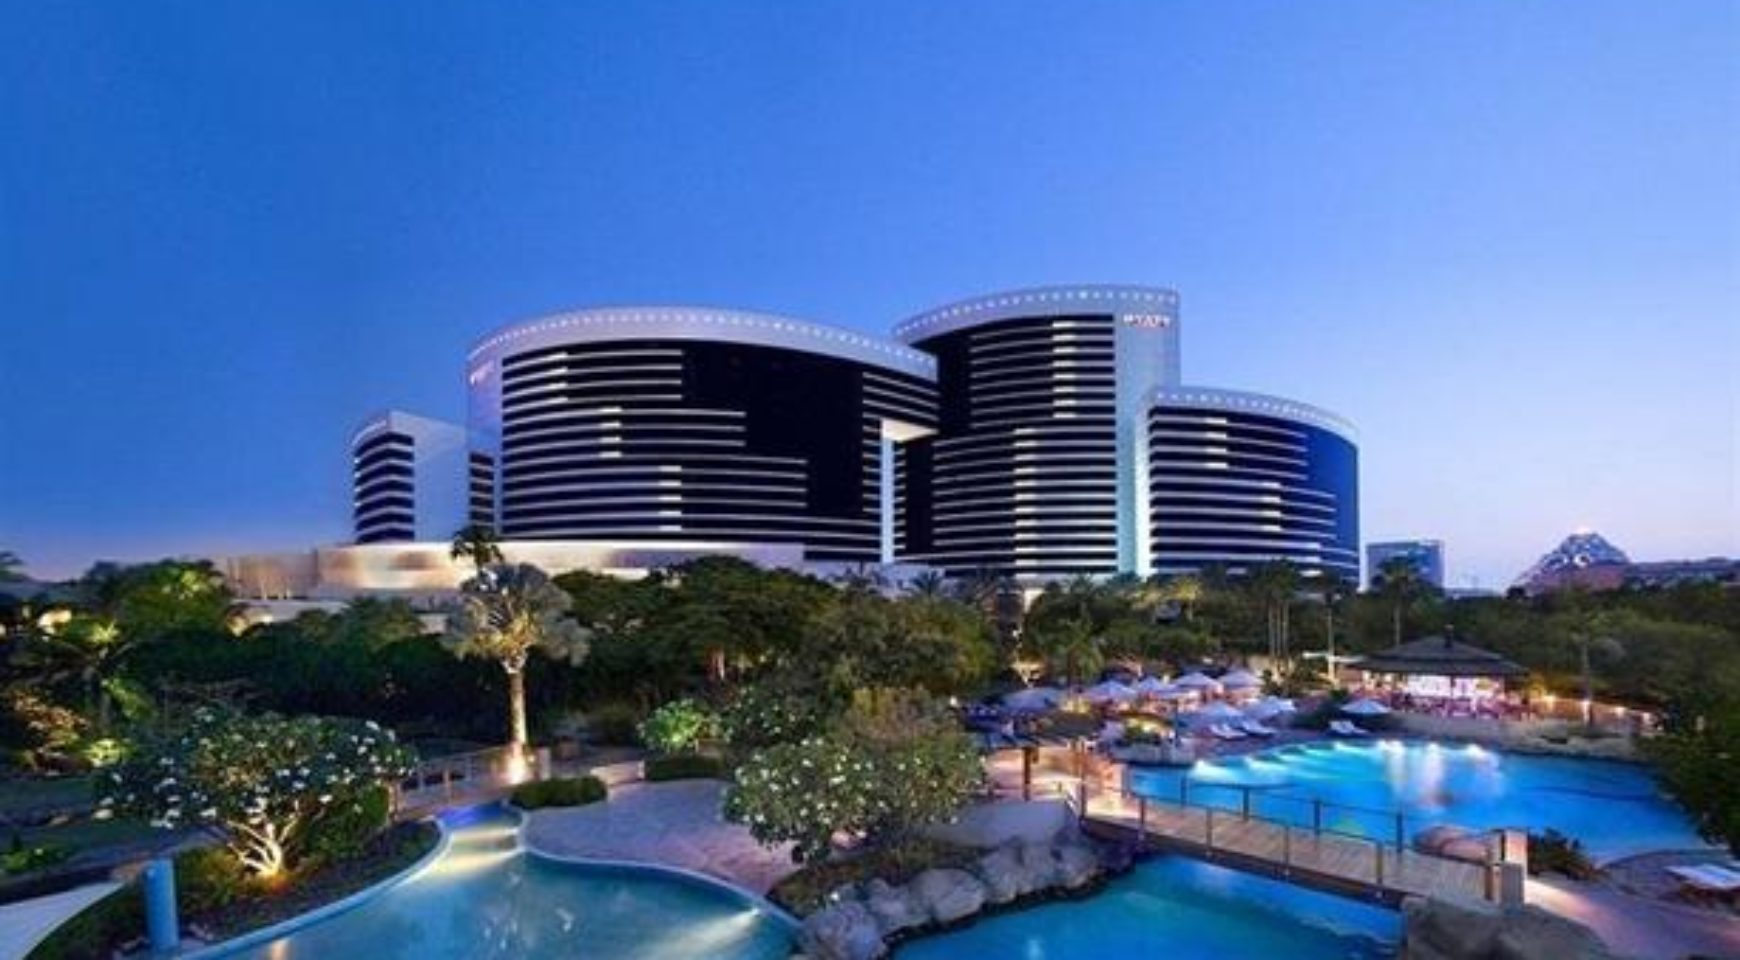 Grand hyatt dubai dubai hotels guide for Dubai hotels list